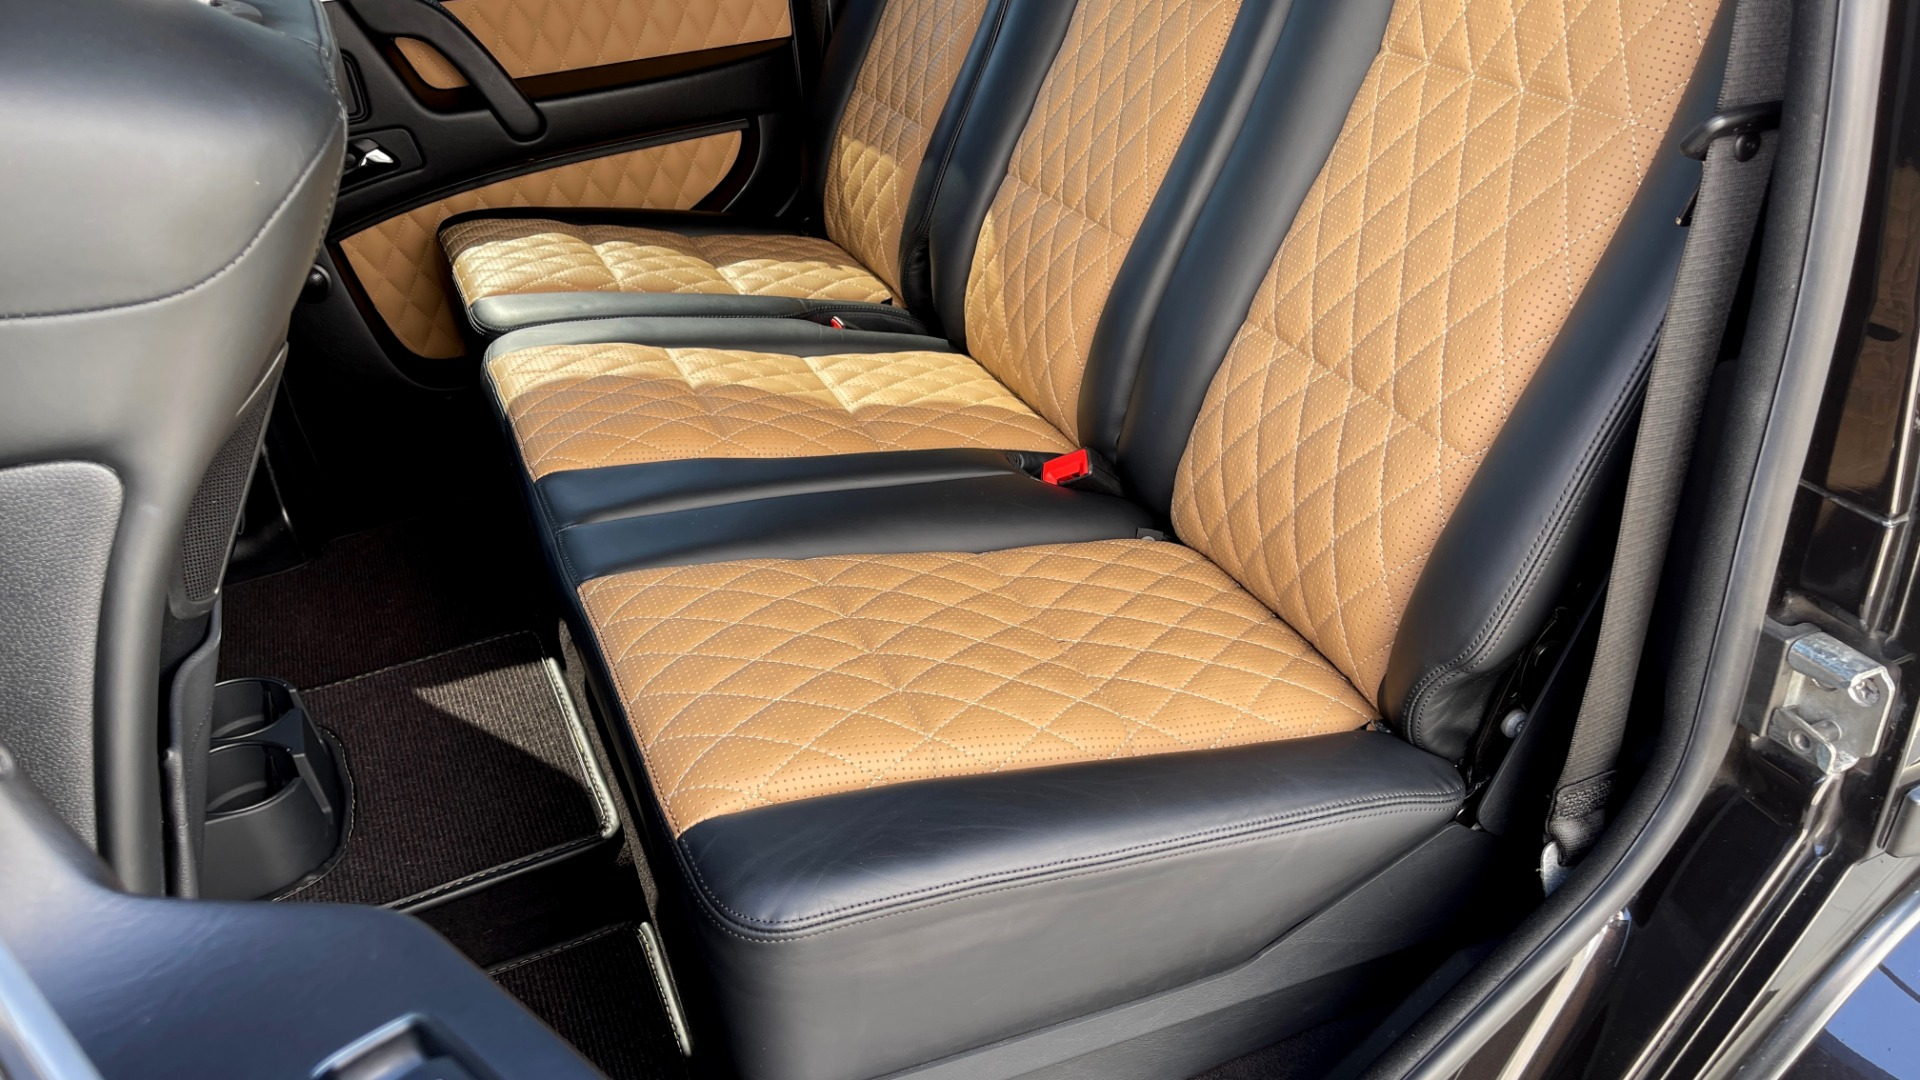 Used 2014 Mercedes-Benz G-CLASS G 63 AMG / DISGNO LEATHER / NAV / SUNROOF / REARVIEW for sale $88,999 at Formula Imports in Charlotte NC 28227 50